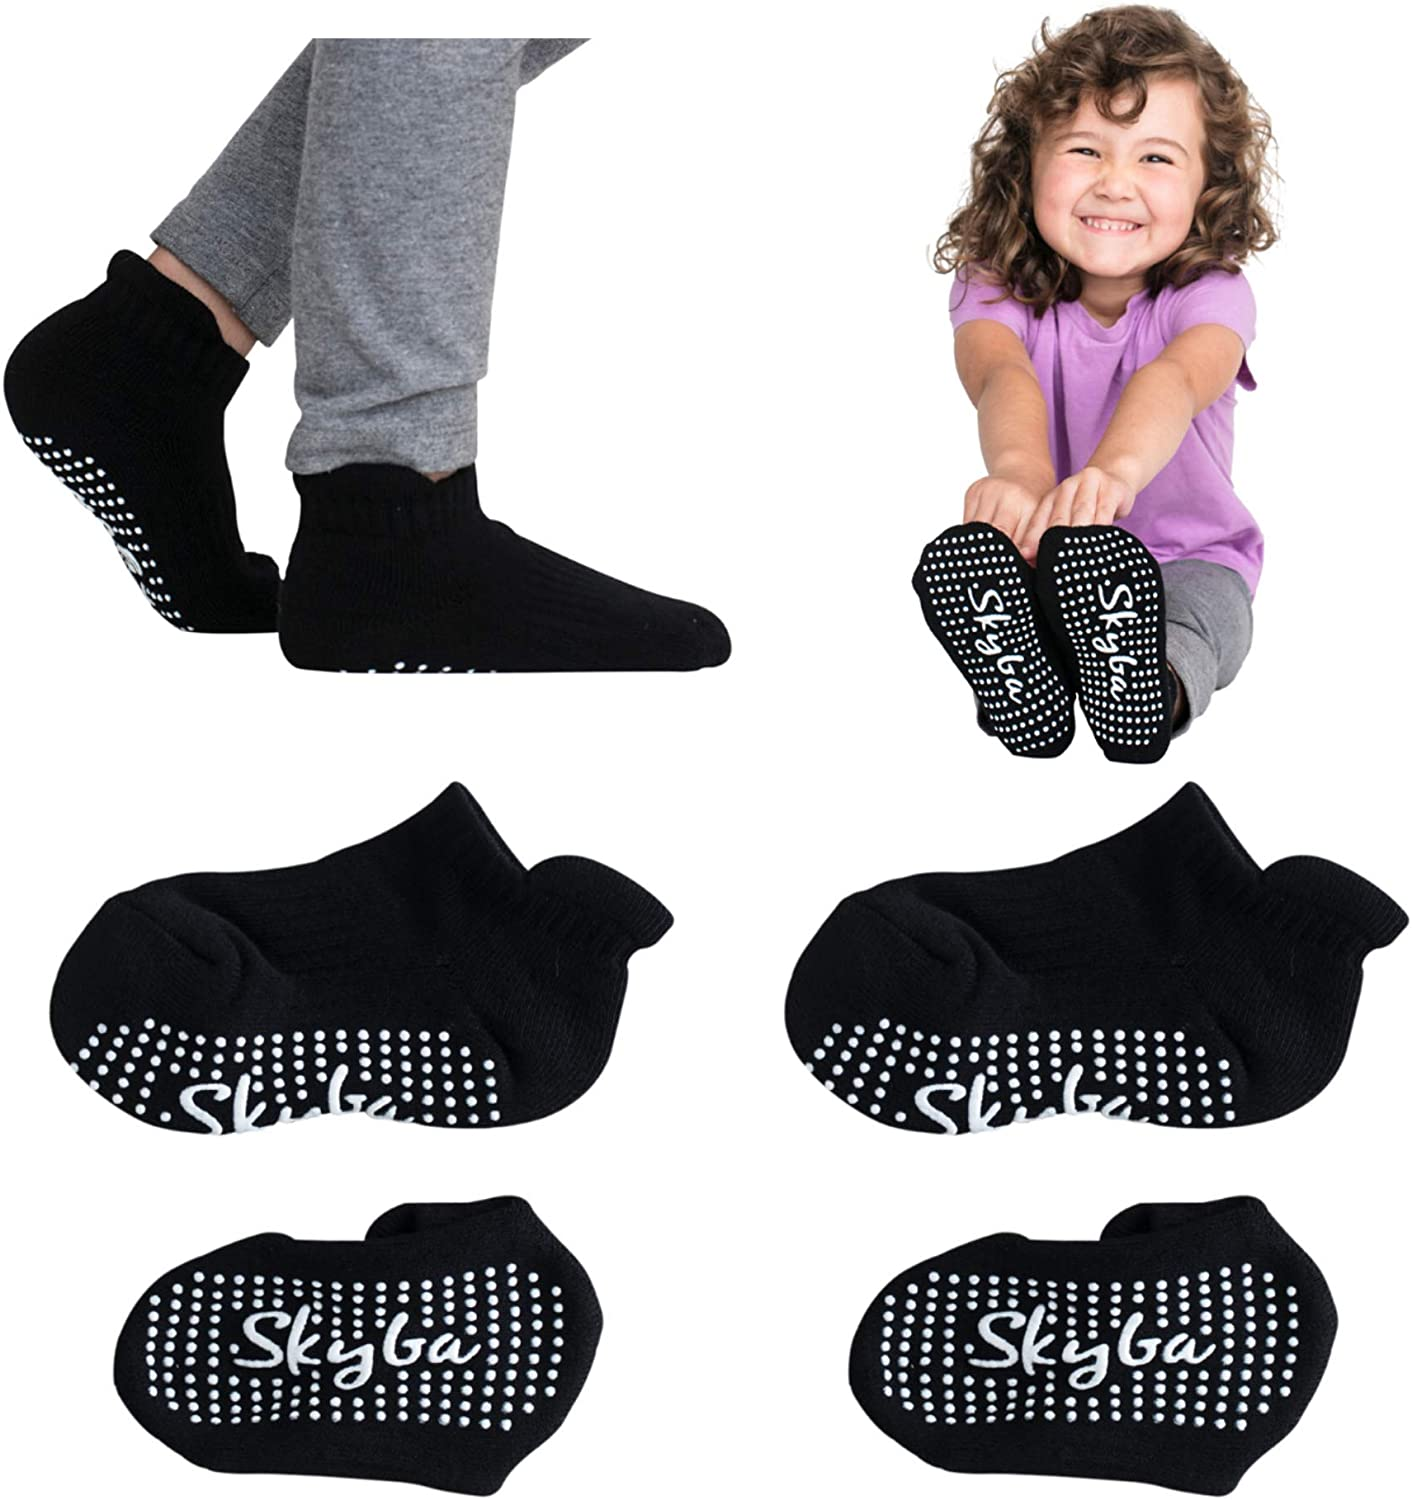 Regular discount Skyba Toddler Socks With Slipper SEAL limited product - Grips Trampoline